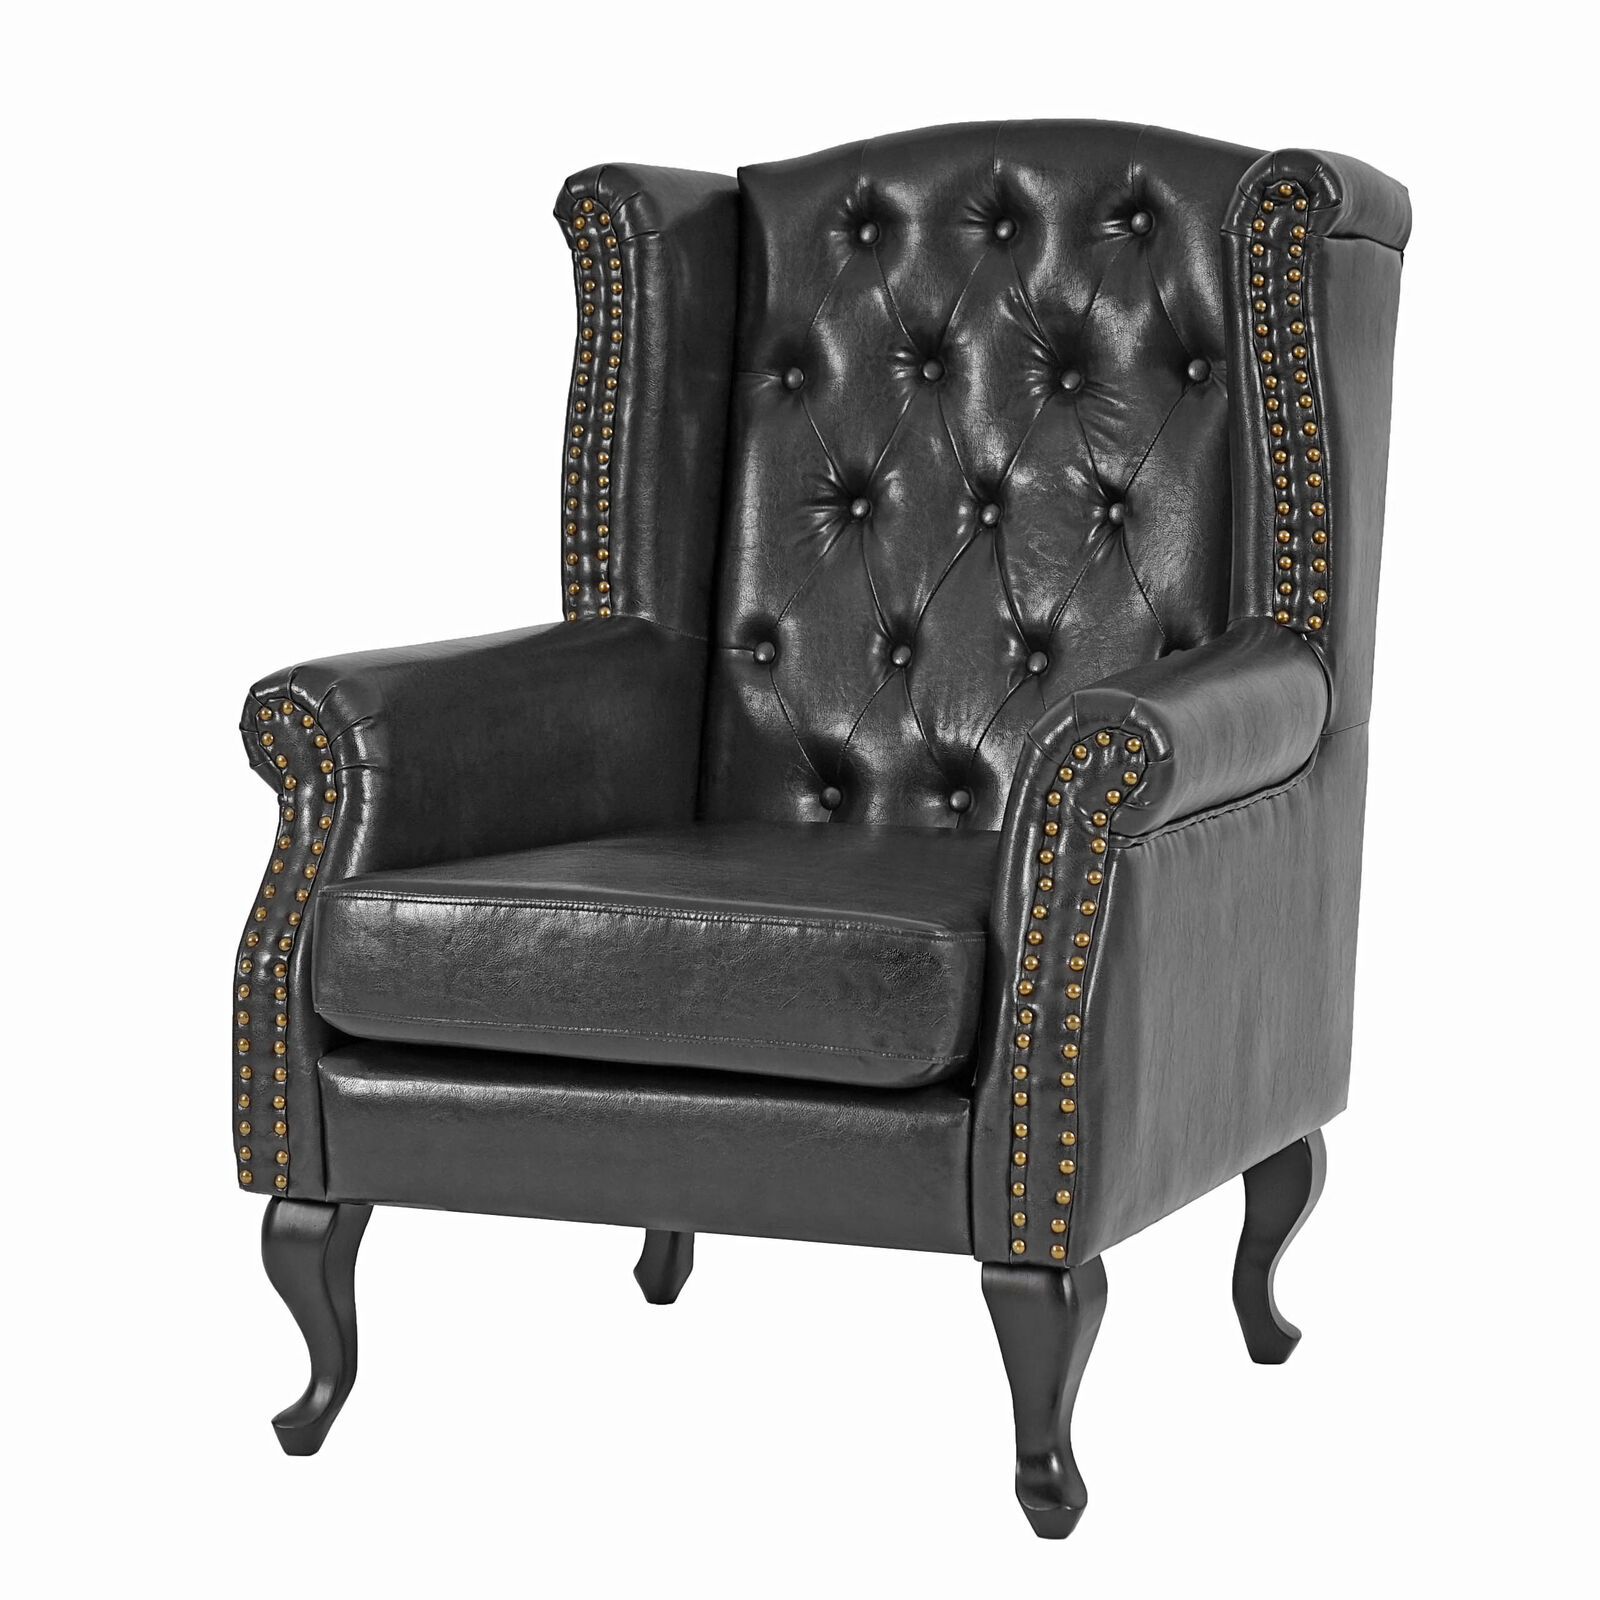 sessel clubsessel chesterfield oxford kunstleder schwarz ohne ottomane eur 189 99 picclick it. Black Bedroom Furniture Sets. Home Design Ideas